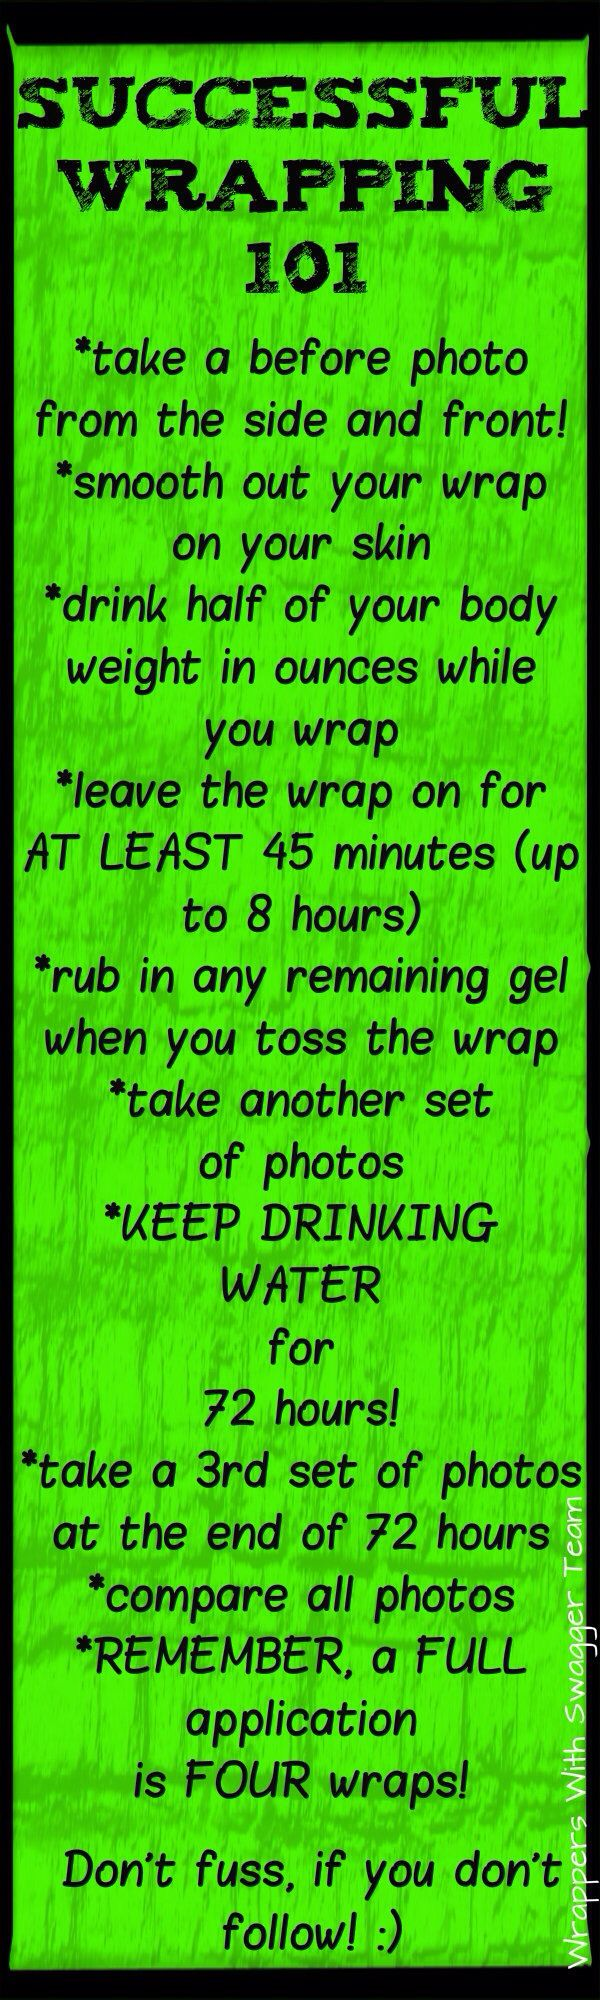 Here's some step by step tips On getting great results with your itworks skinny wrap!